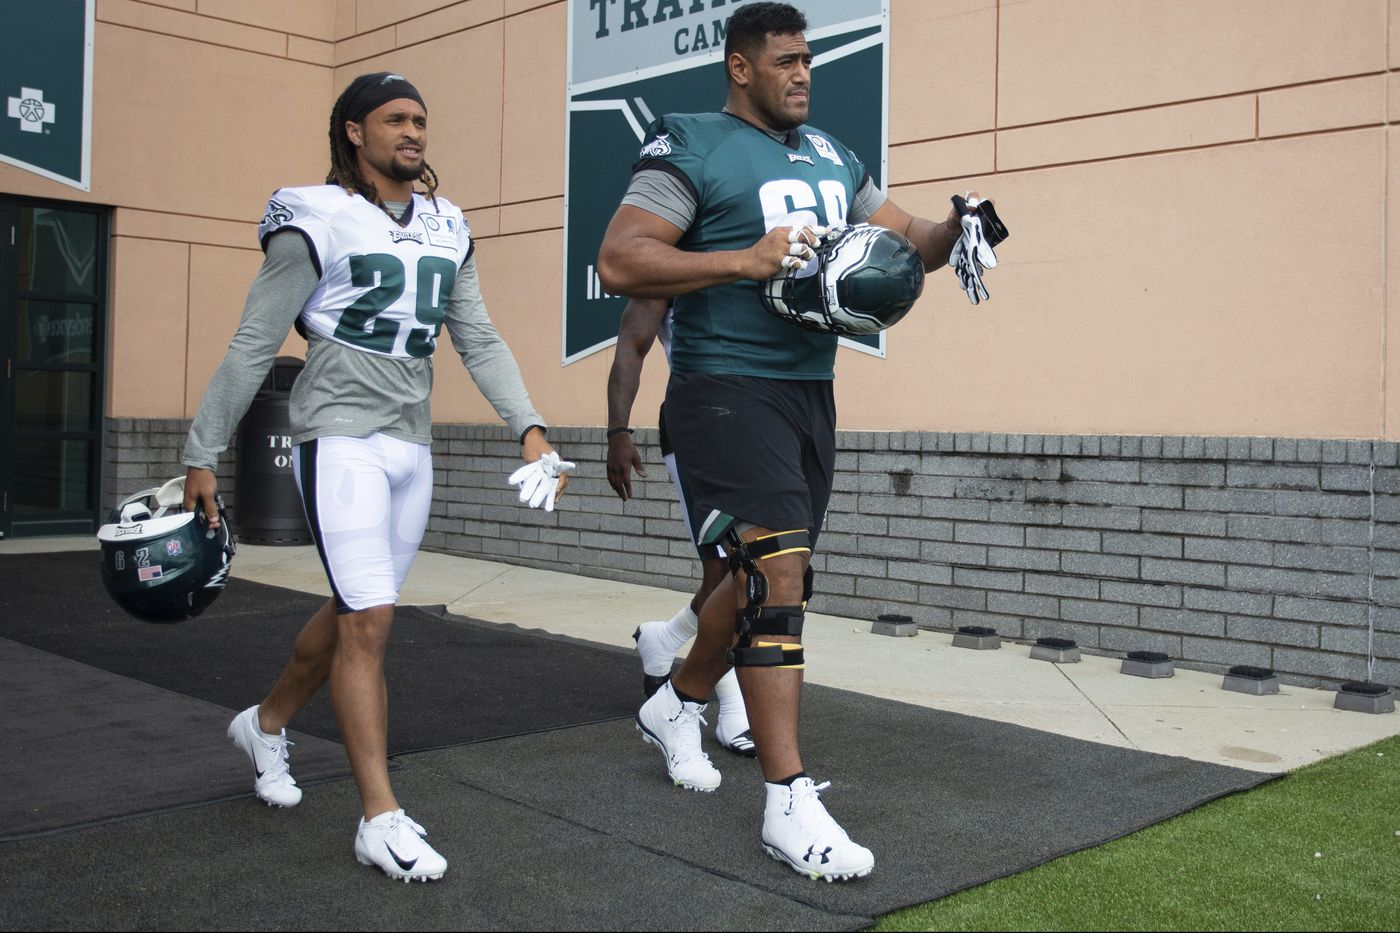 Jordan Mailata, the Eagles' biggest rookie, faces the biggest challenge